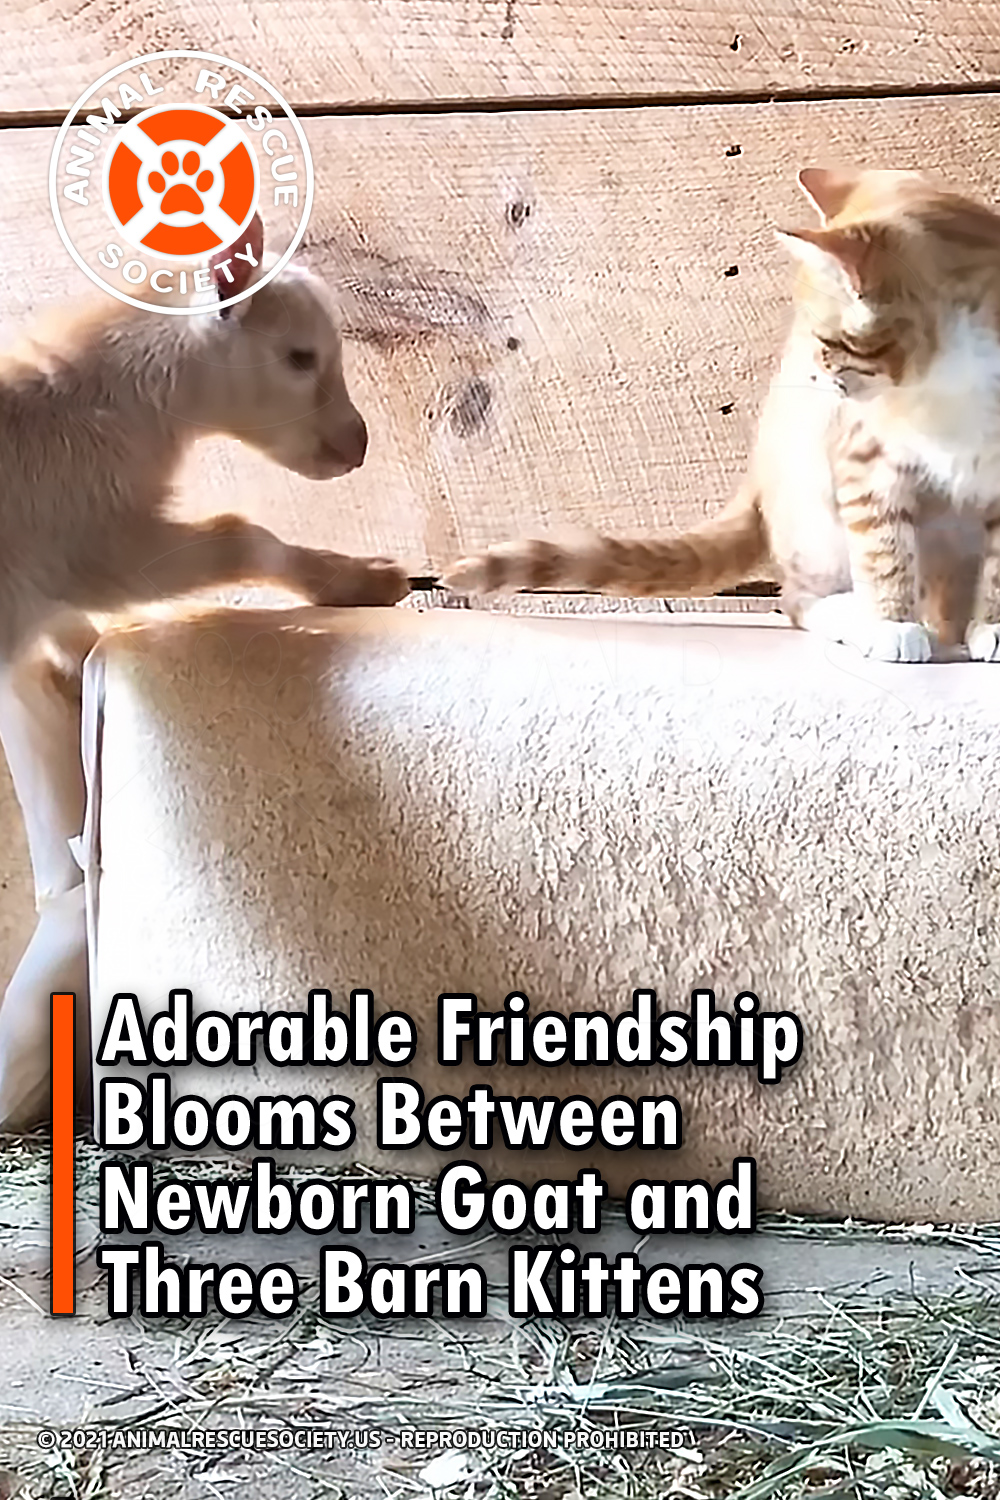 Adorable Friendship Blooms Between Newborn Goat and Three Barn Kittens